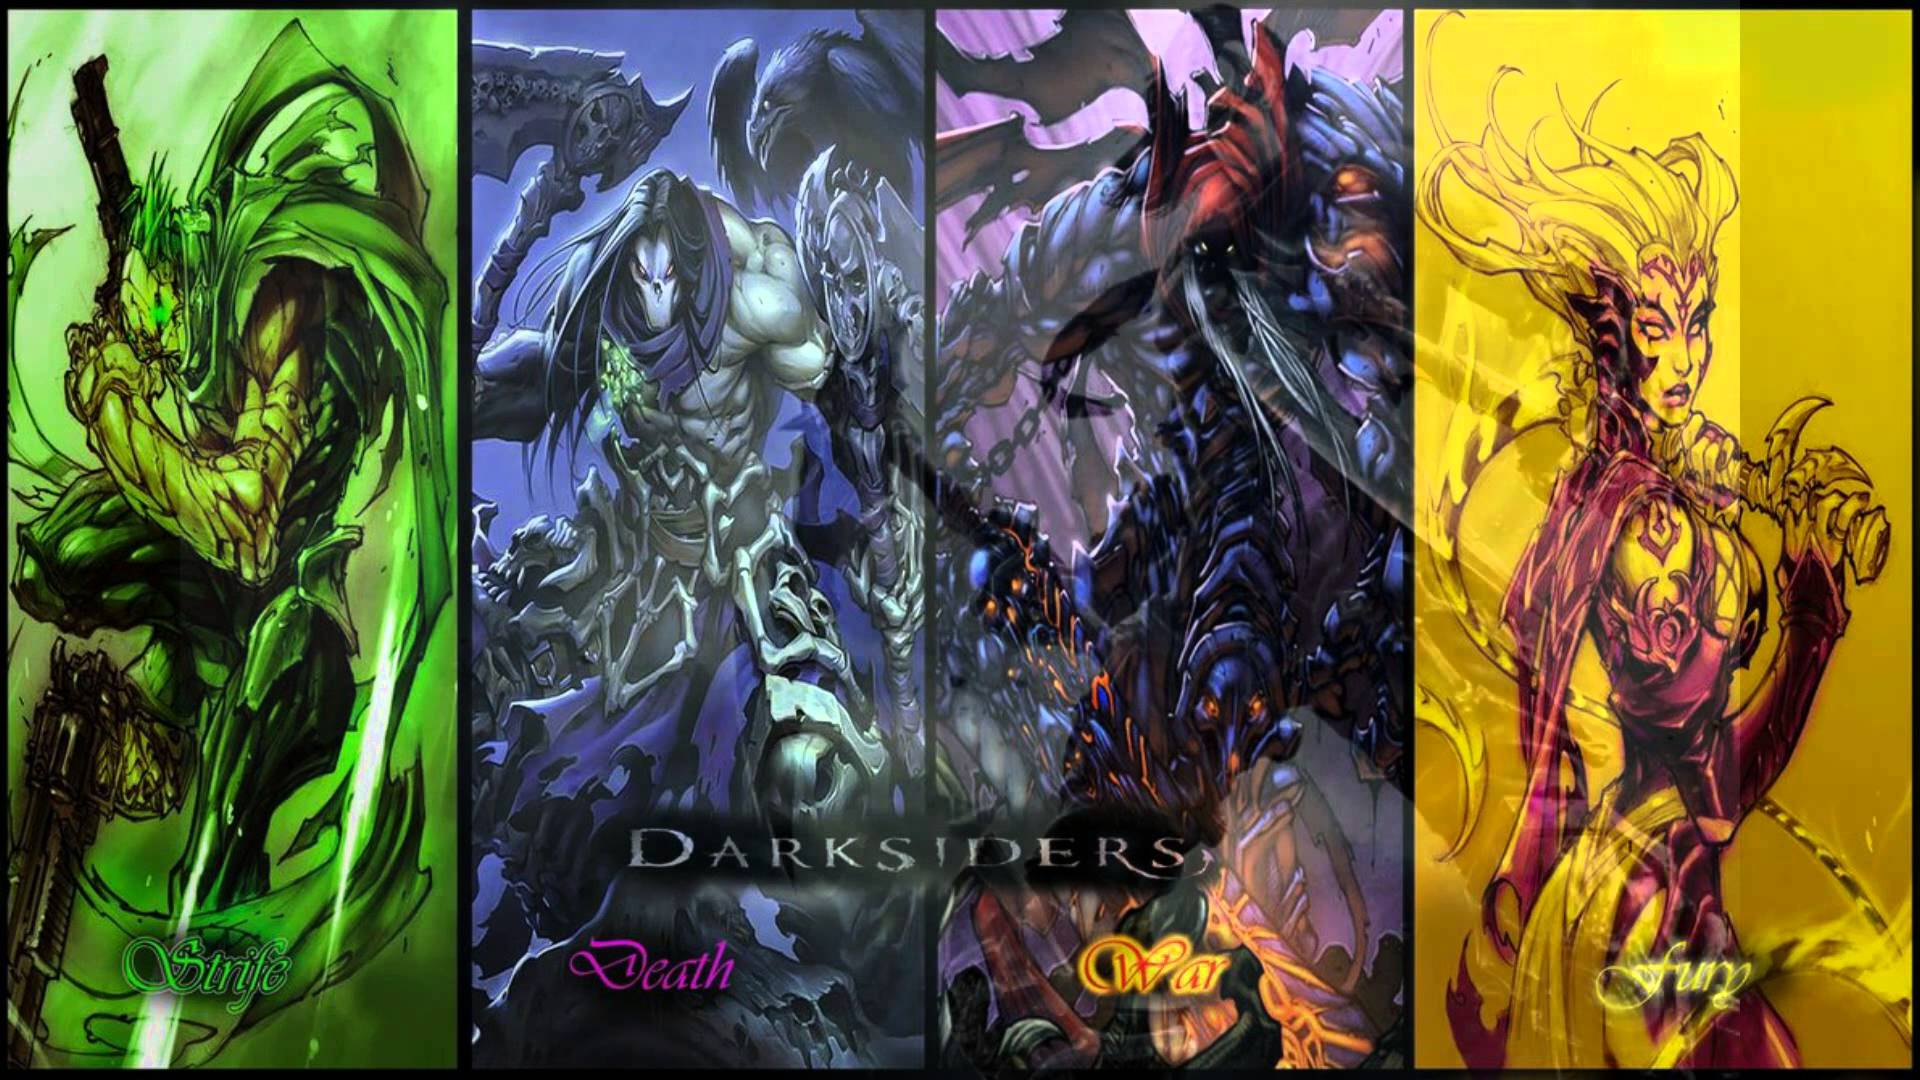 Sweet Darksiders II Wallpapers Available Darksiders